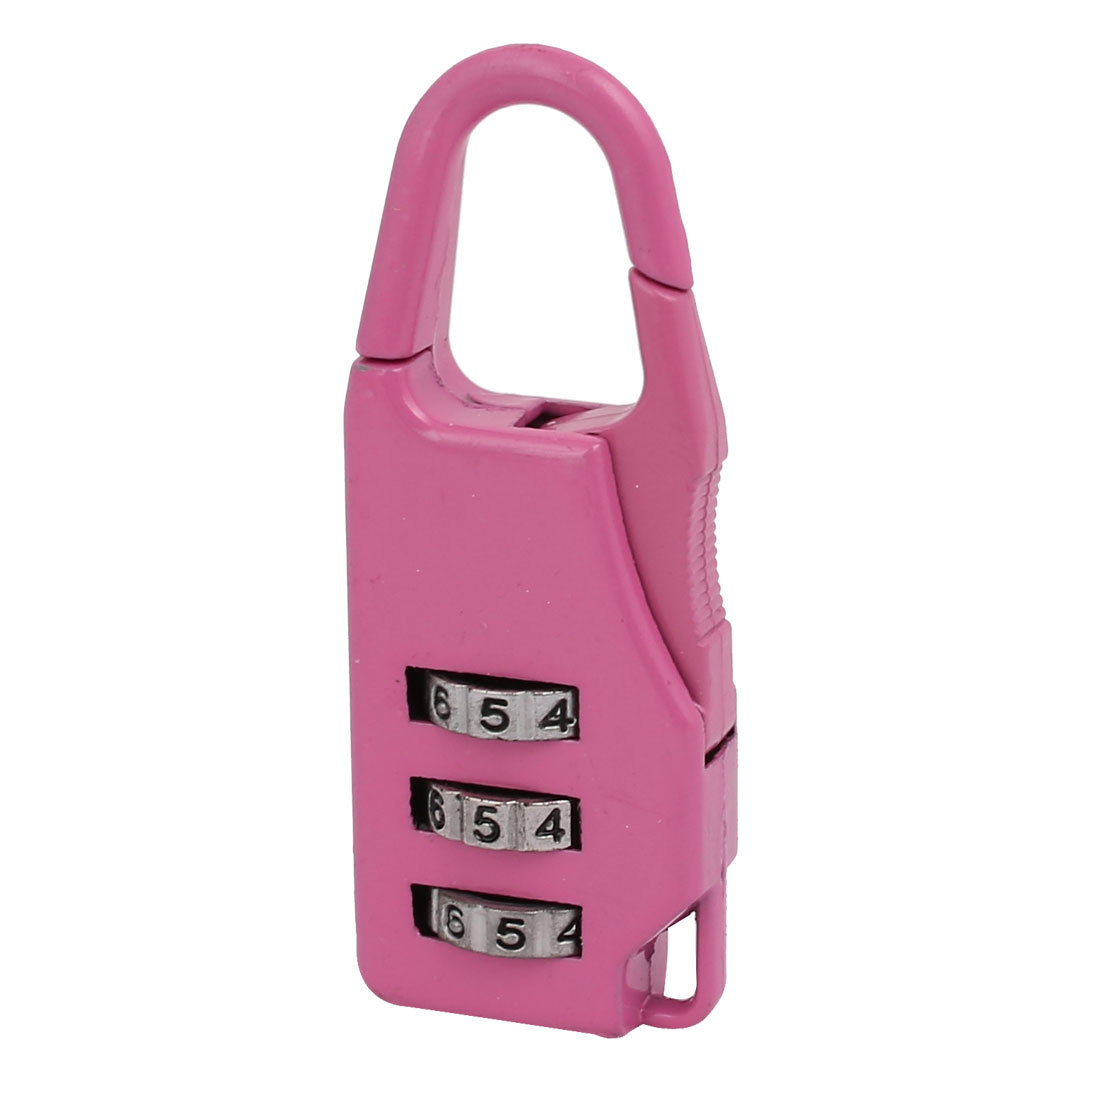 "2 "" Length Metal Handbag Shaped 3 Digit Resettable Combination Lock Pink"